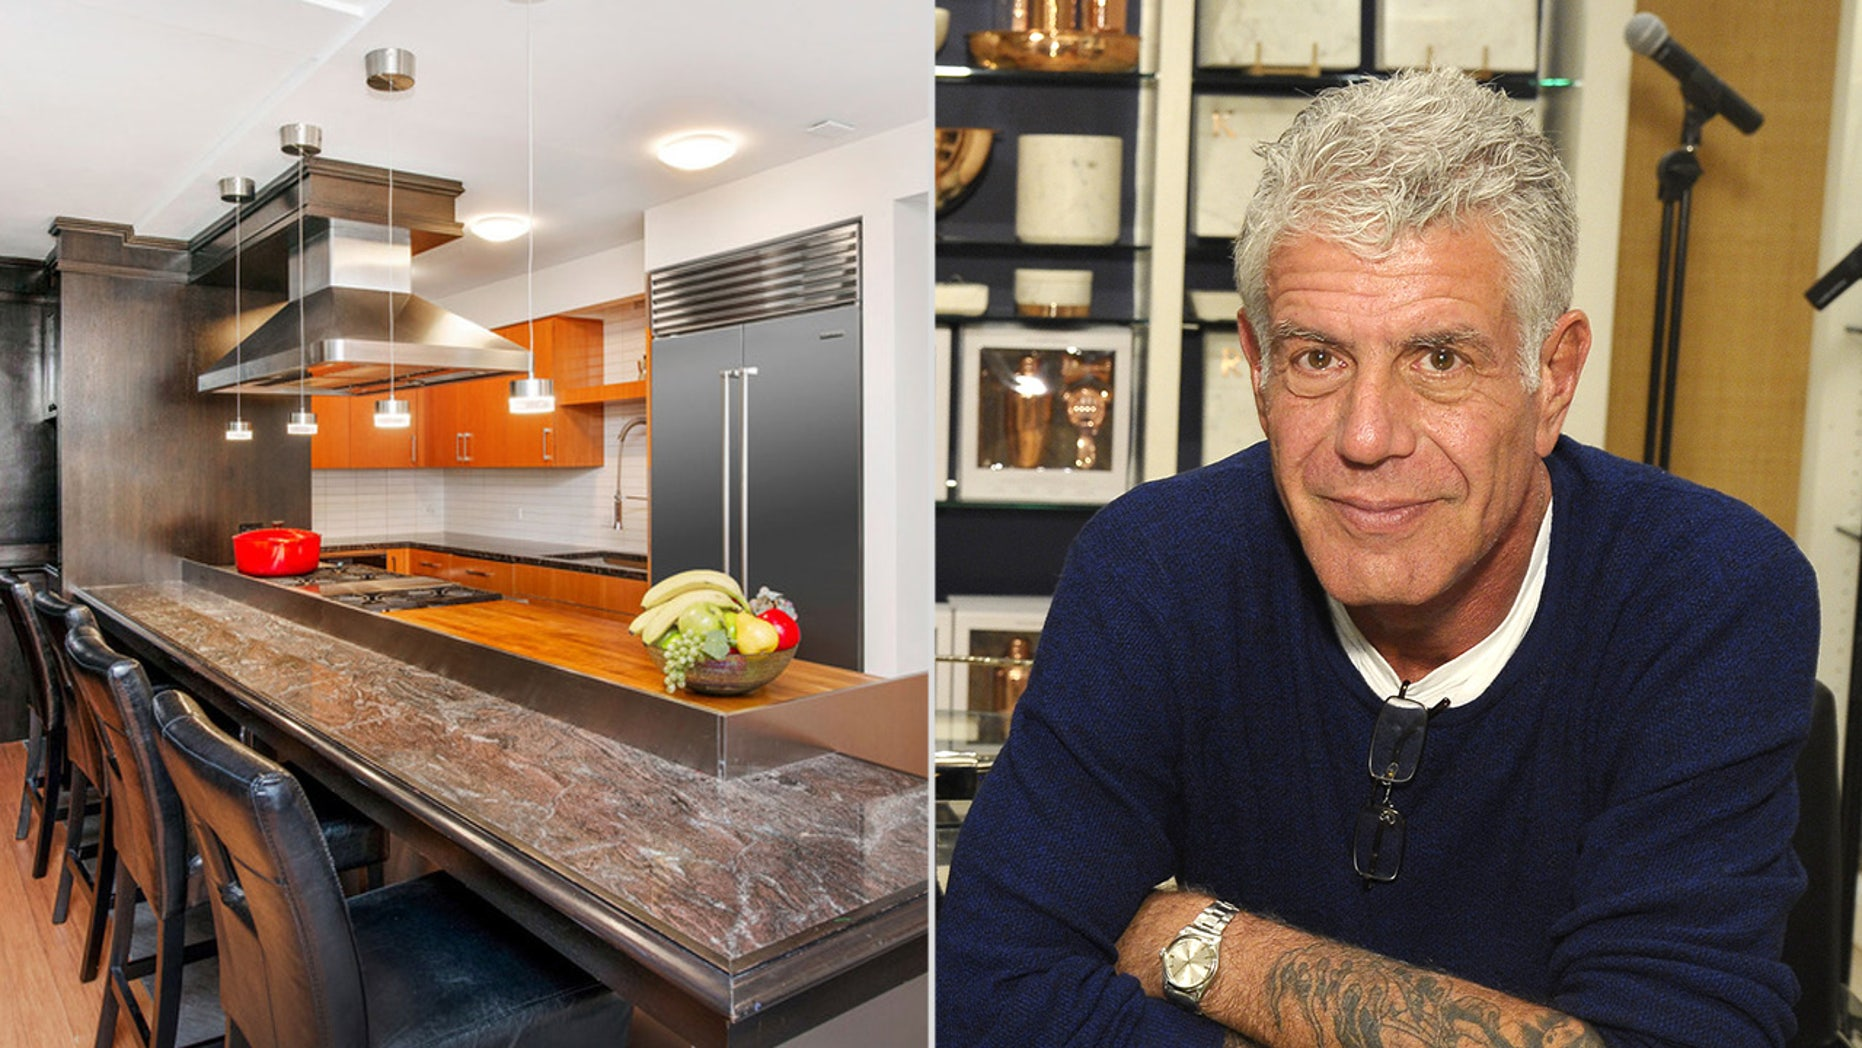 Bourdain and disloyal mother Ottavia Busia bought a section in 2014 for $3.35 million.